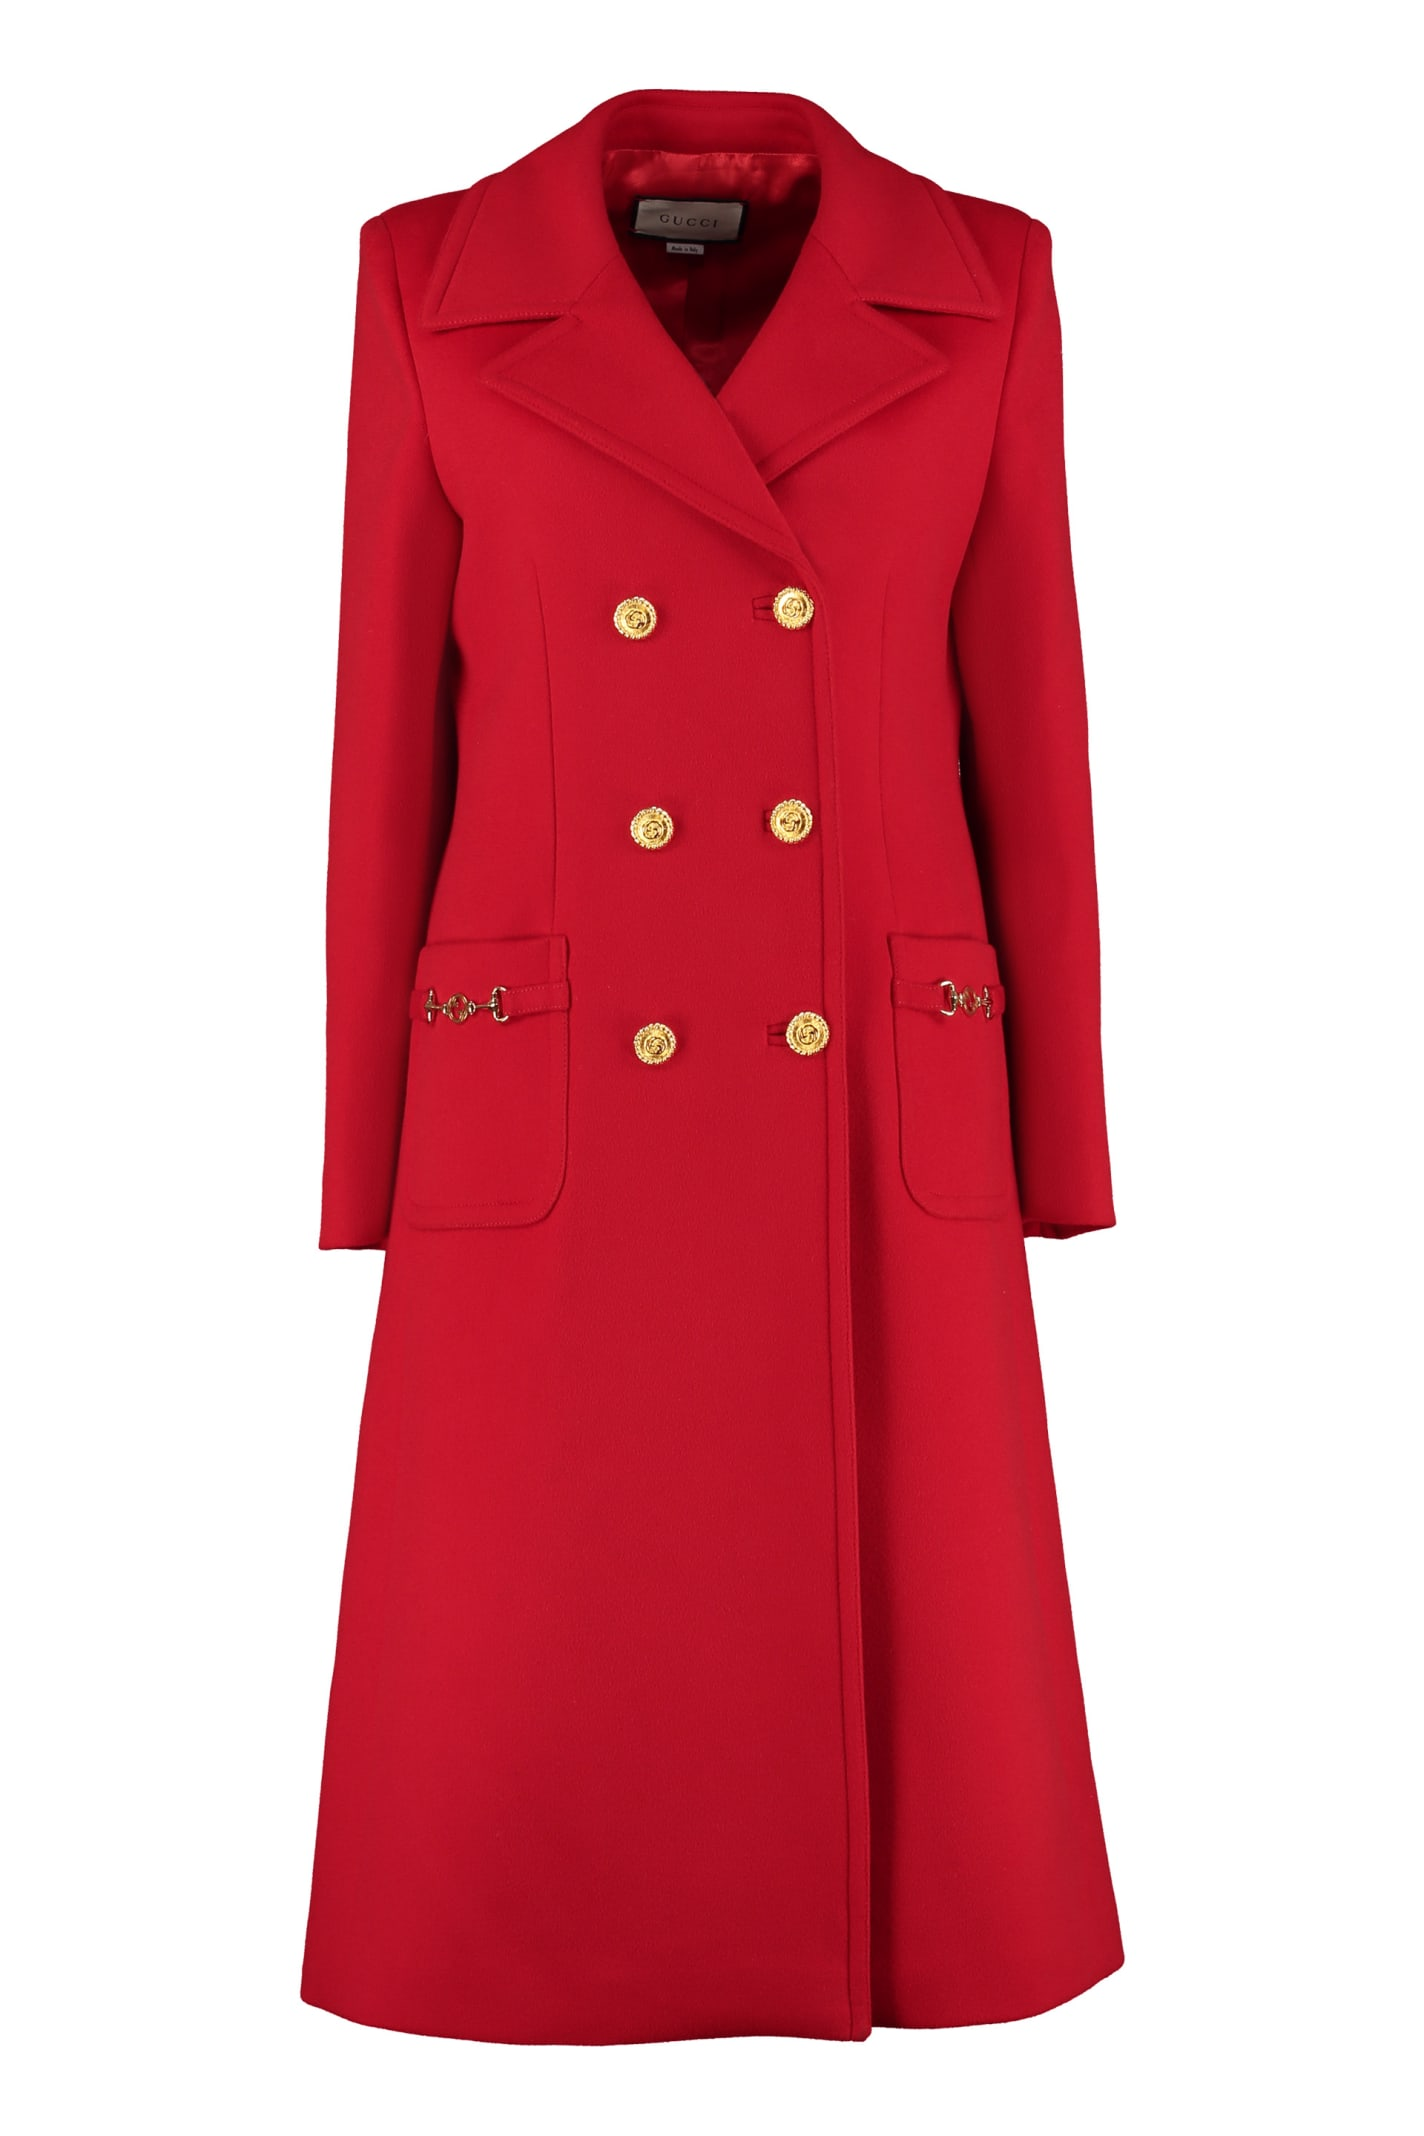 Gucci Coats DOUBLE-BREASTED WOOL COAT